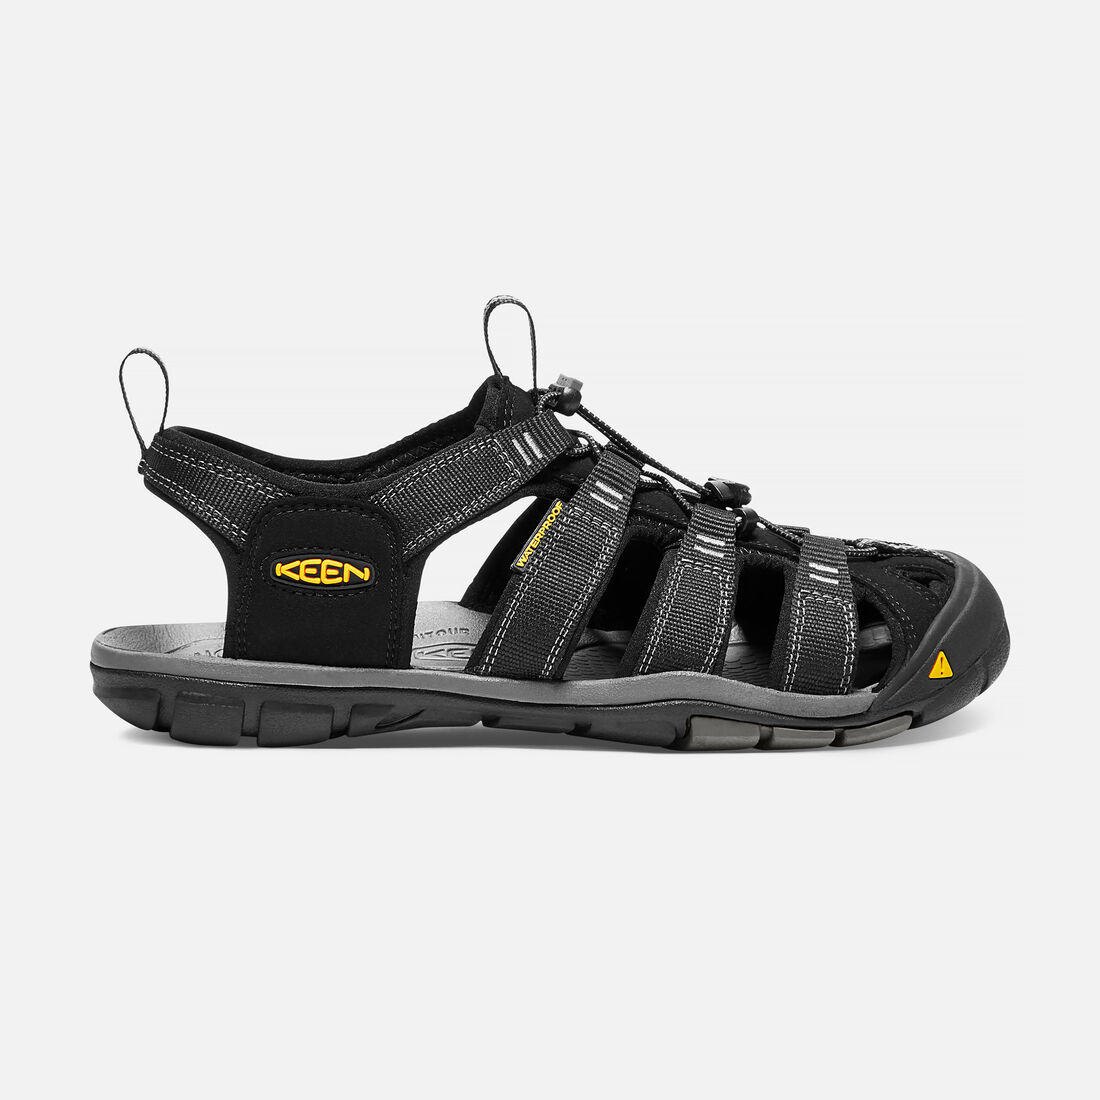 76476acc7fd3 Men s Clearwater CNX - Hiking Sandals